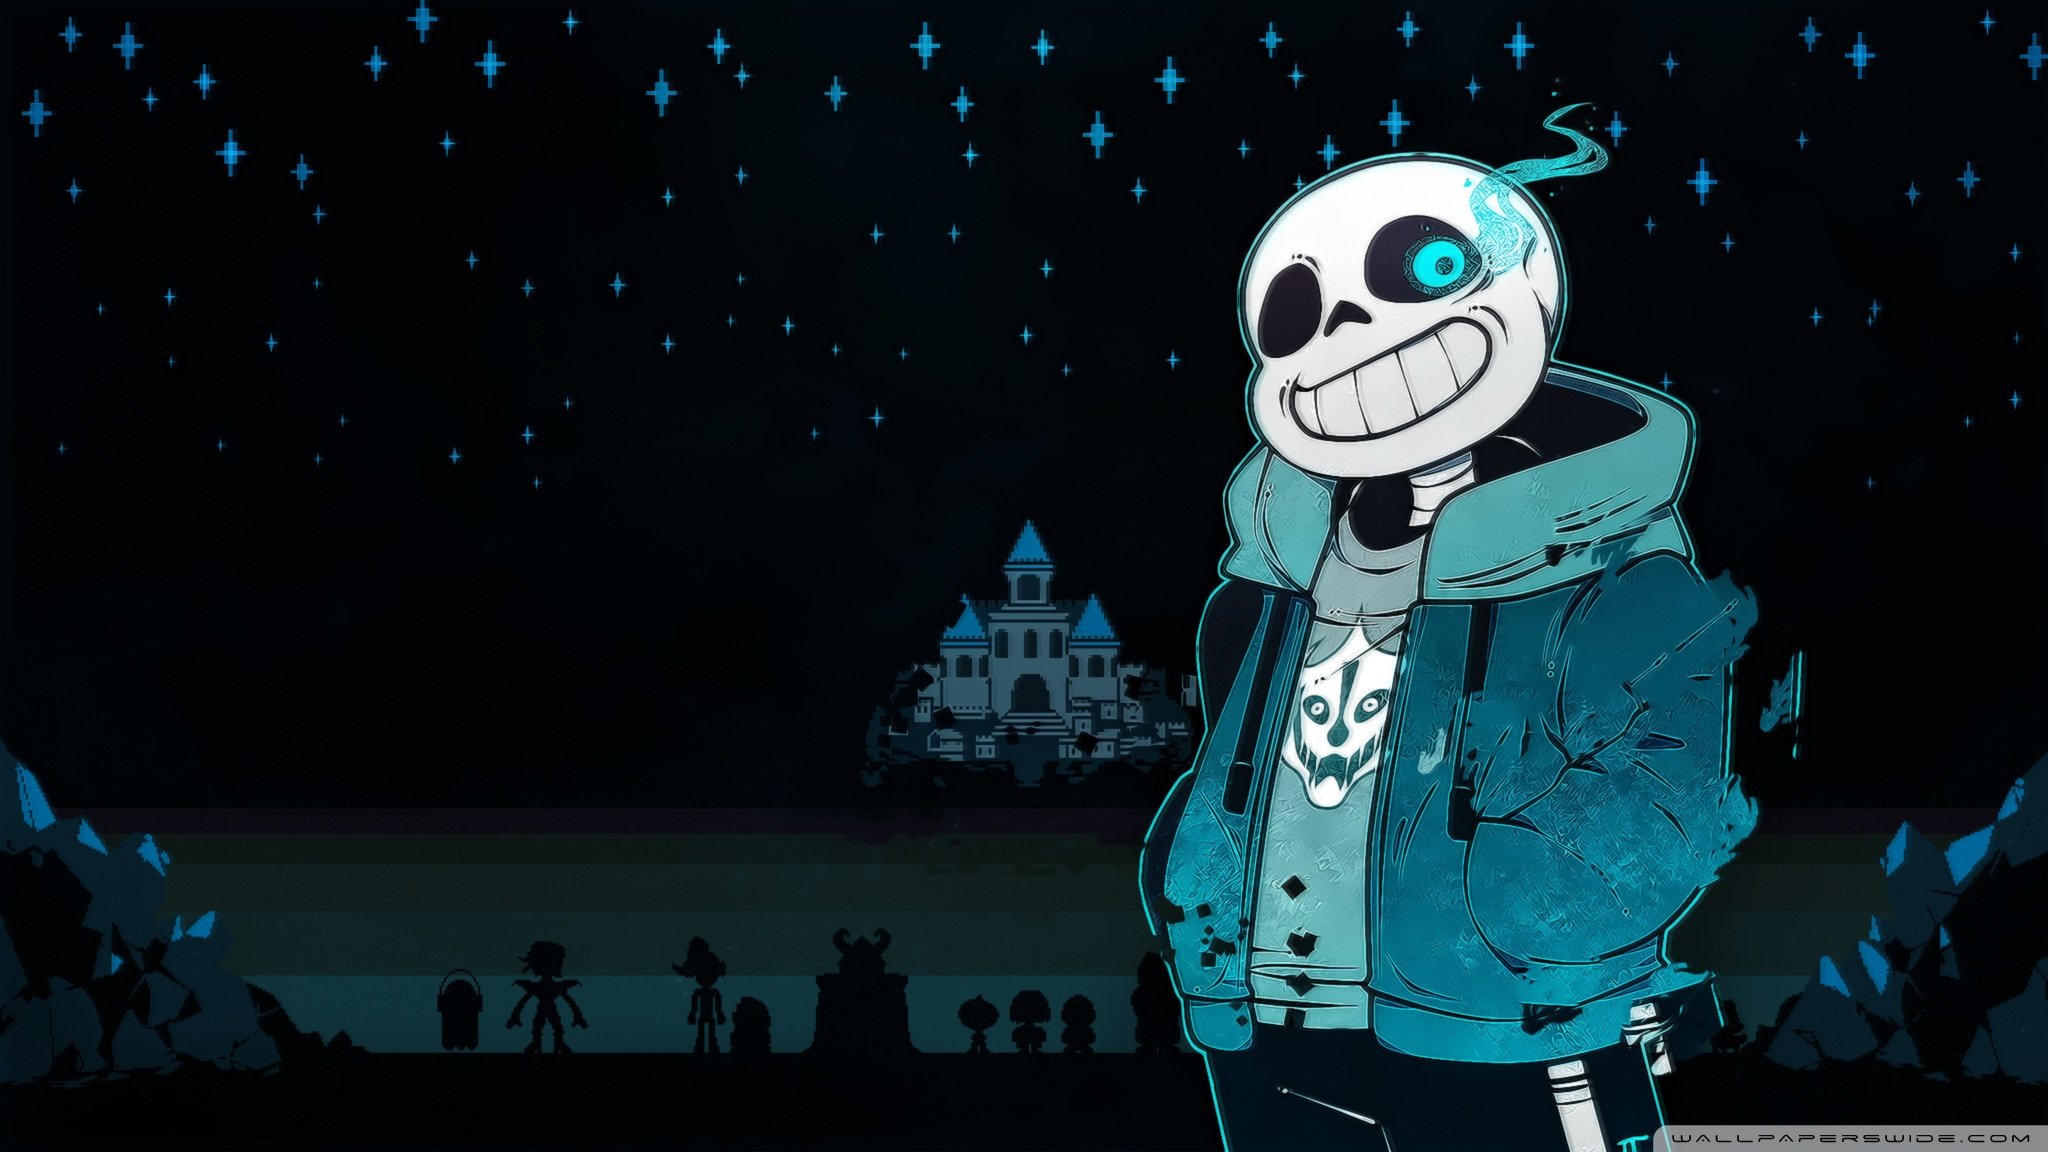 Undertale HD Wallpaper | Background Image | 2048x1152 | ID:969416 - Wallpaper Abyss